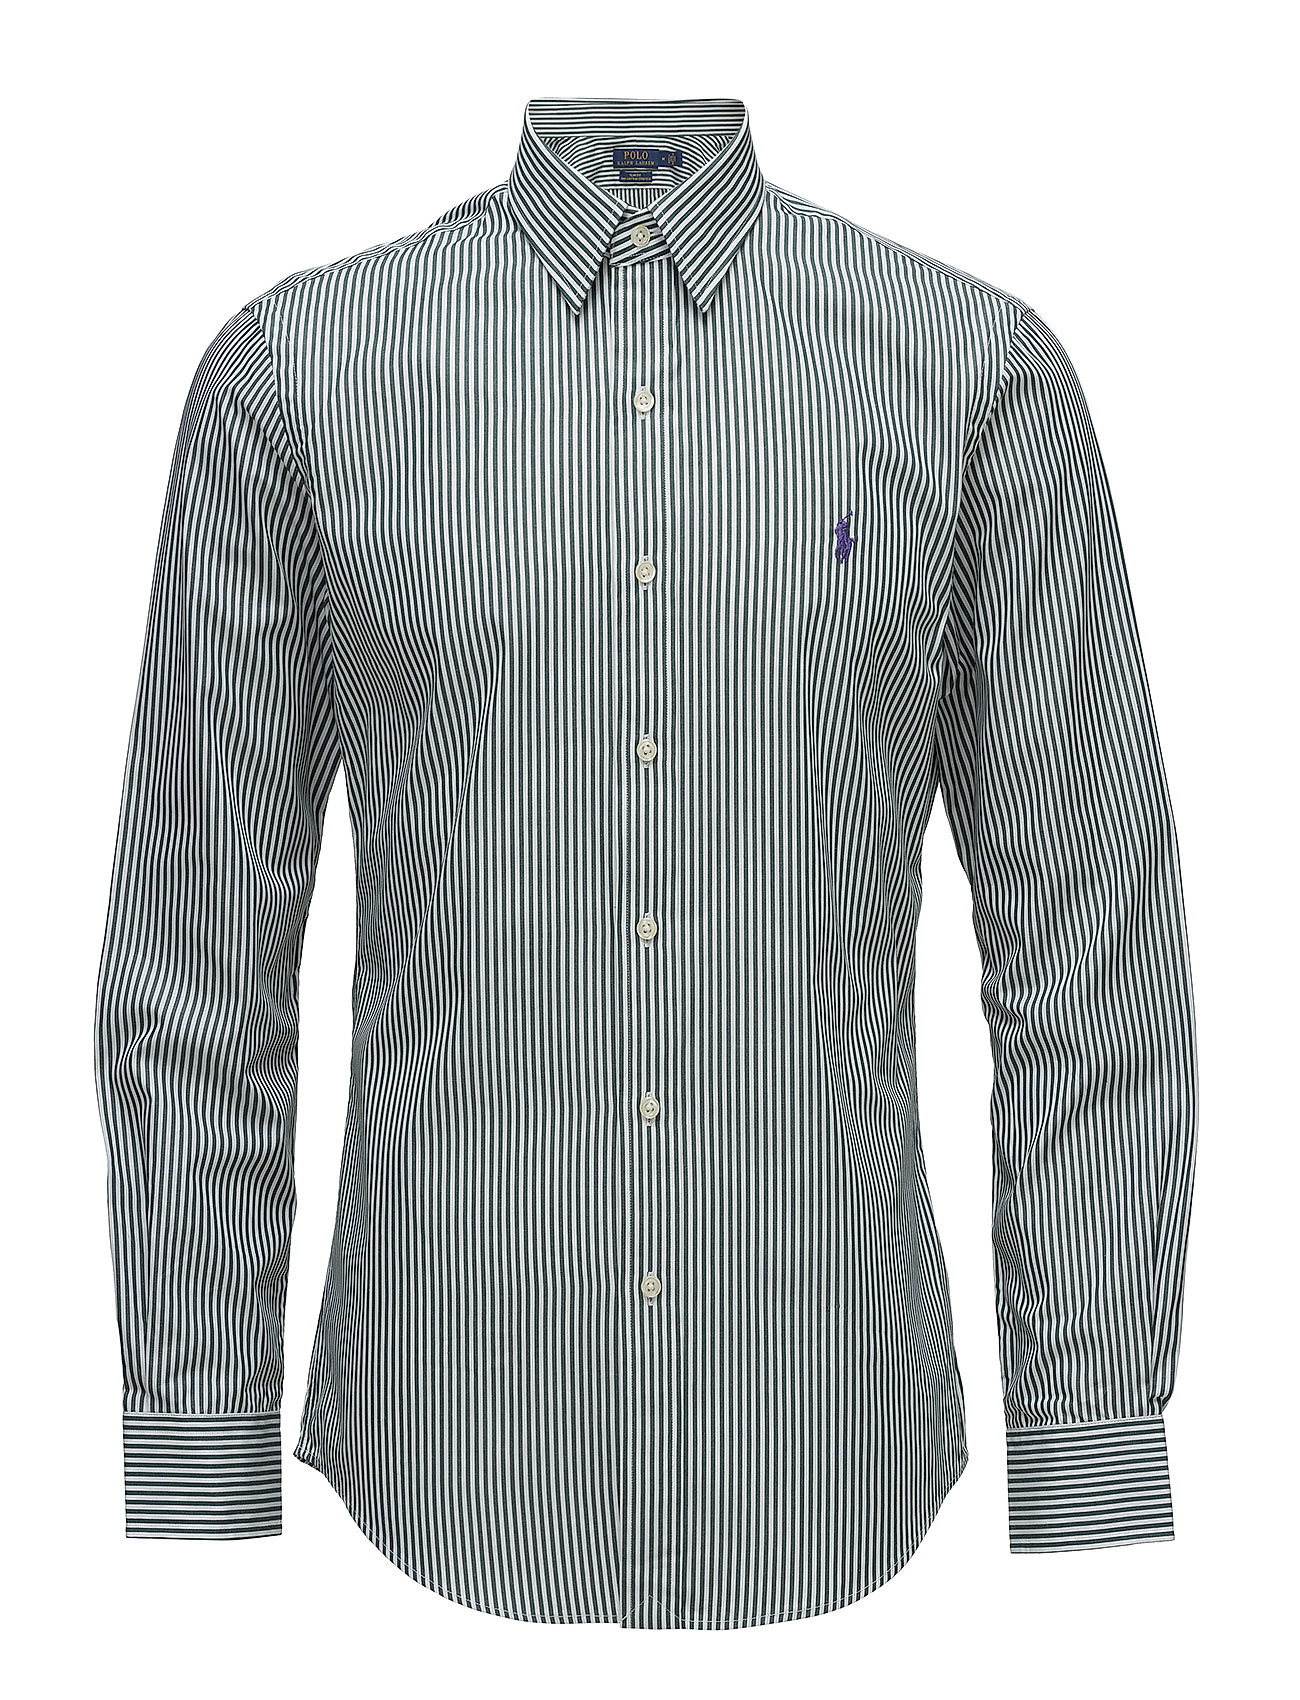 Polo Ralph Lauren Slim Fit Striped Poplin Shirt